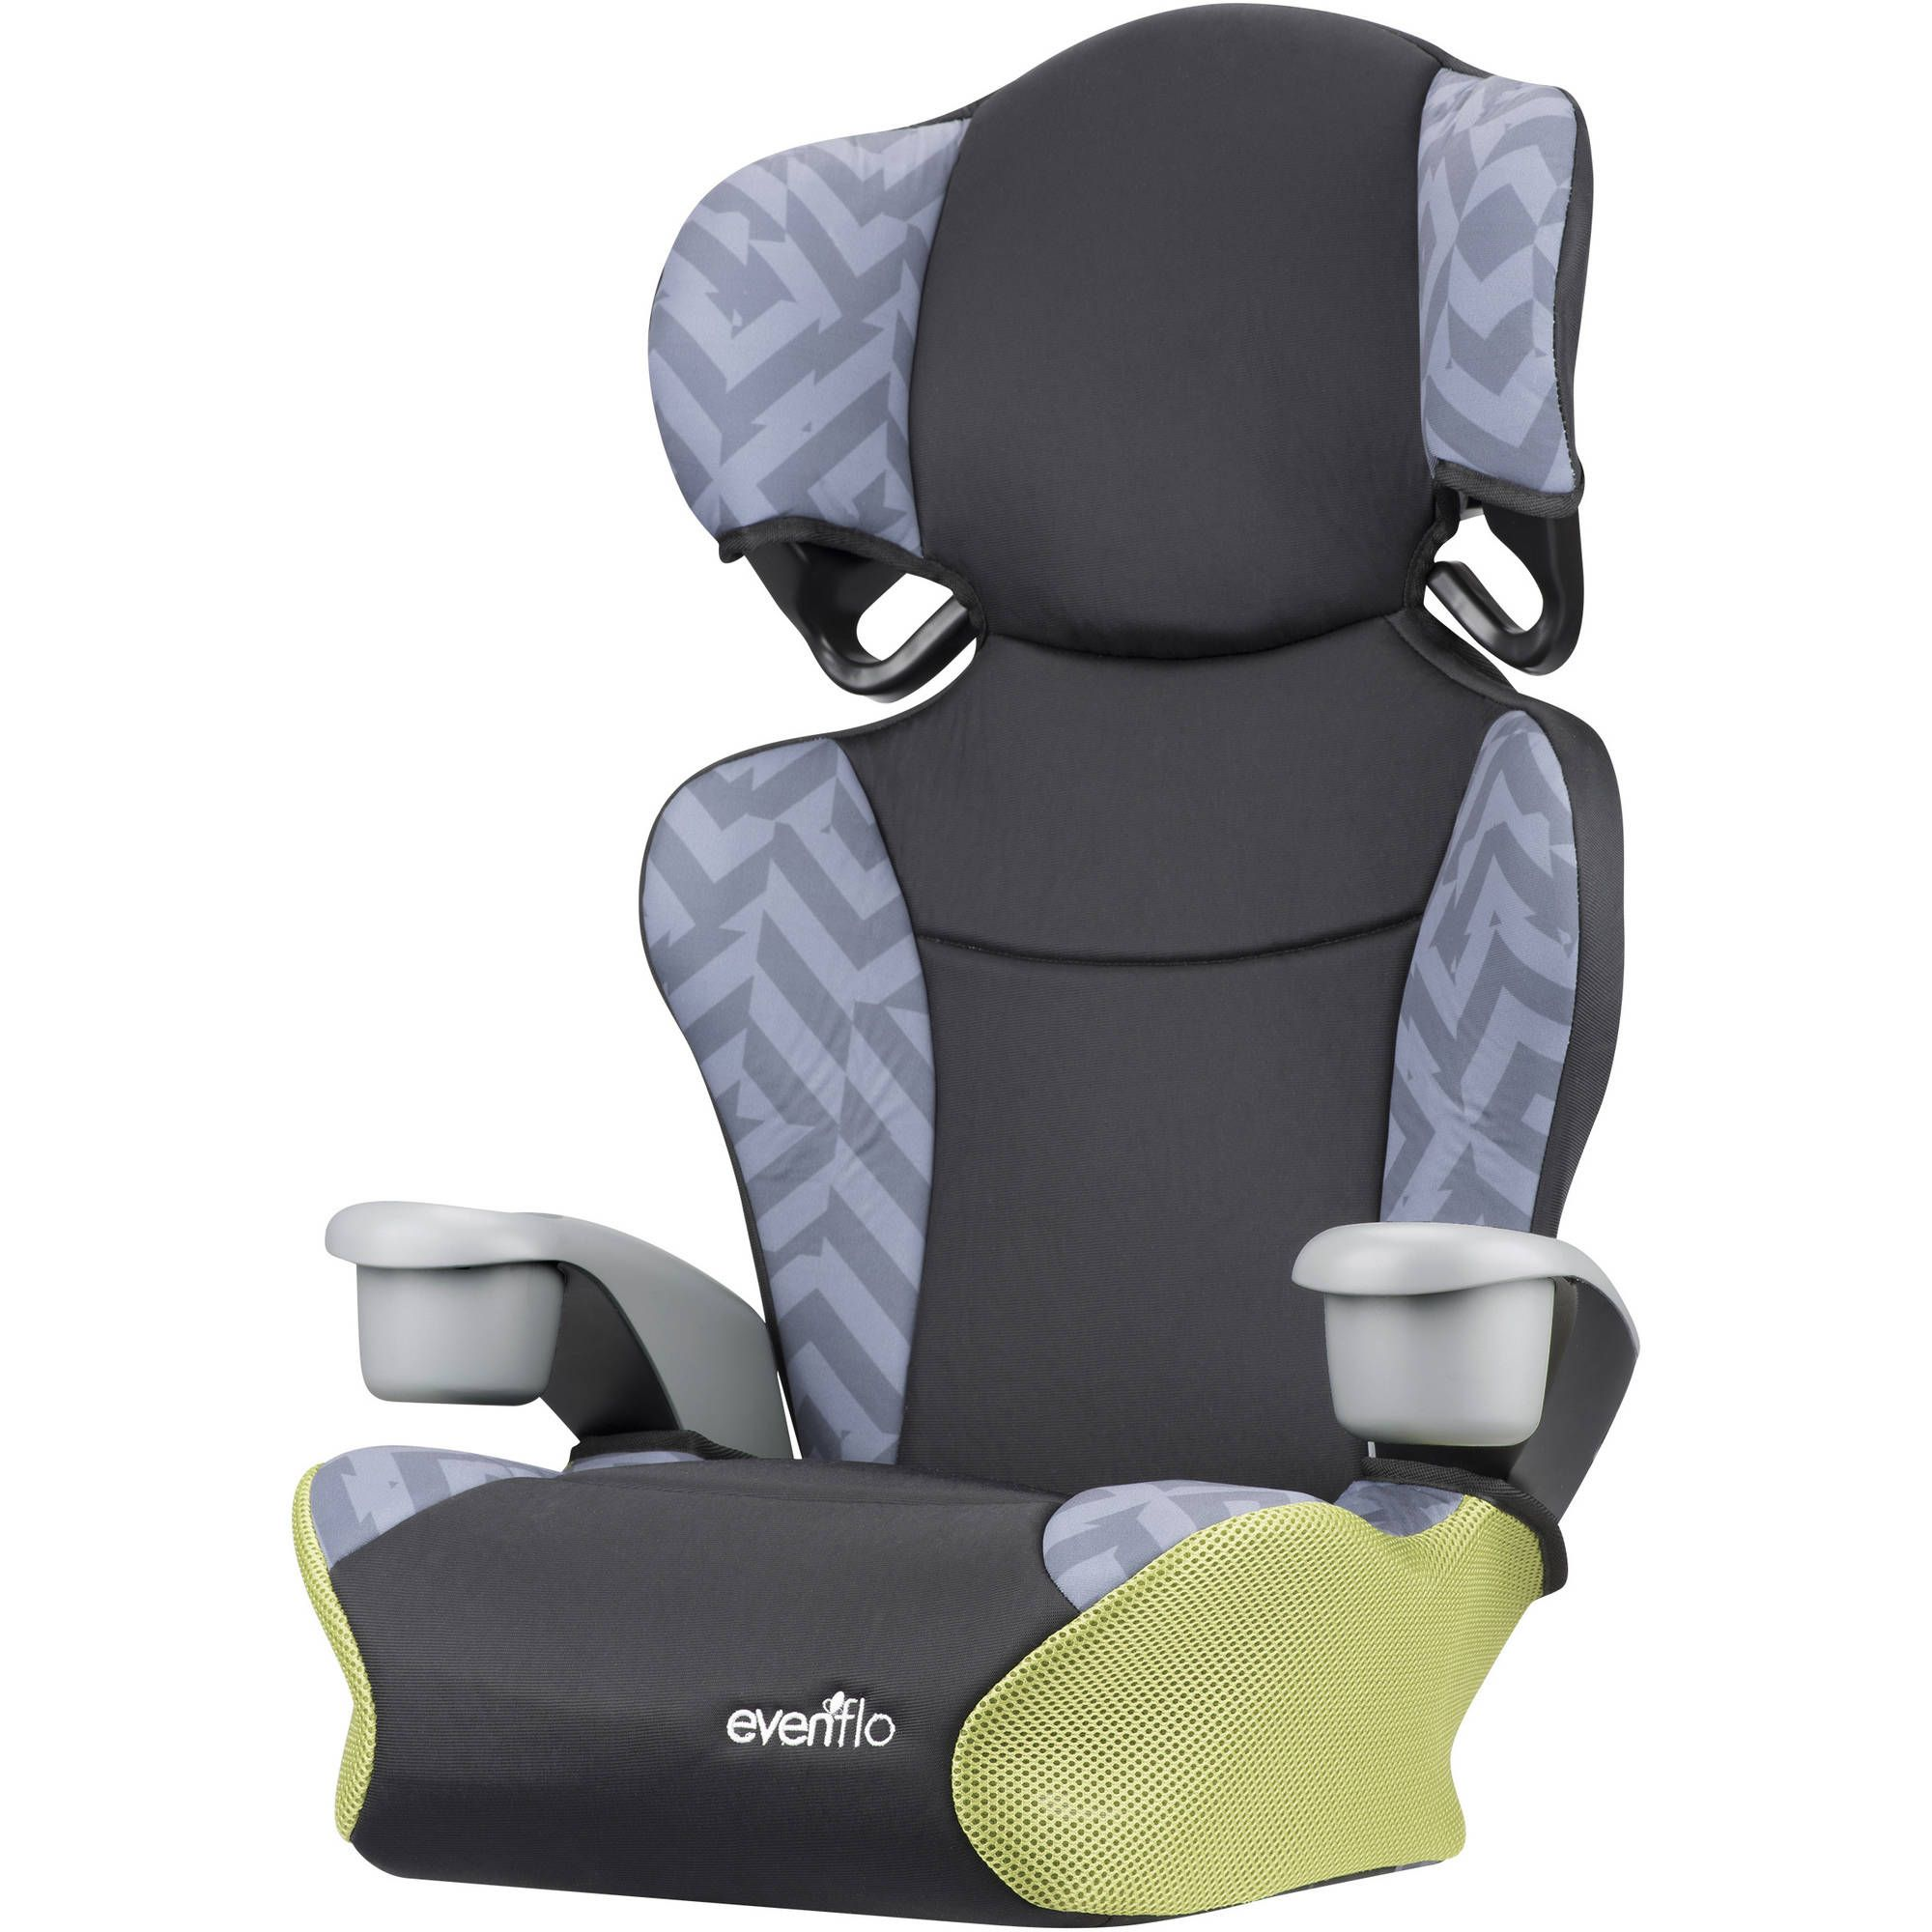 Evenflo Kid Sport High Back Booster Car Seat Goody Two Tones 29 88 Usd 2 Seats In 1 Removable For Easy Transition To A No